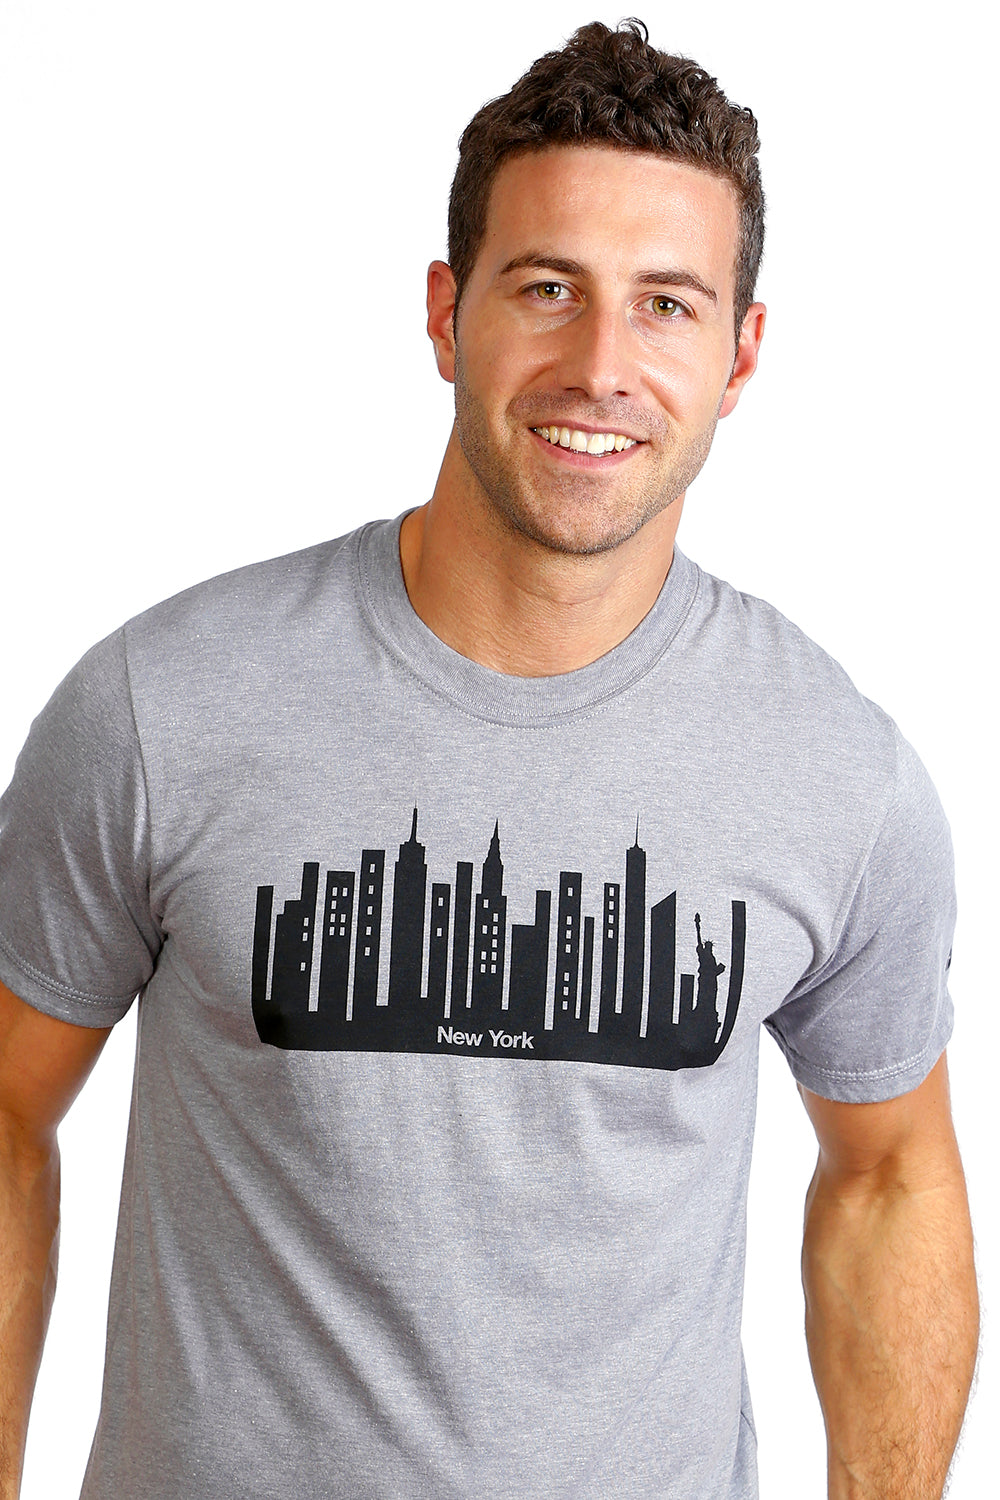 T- shirt for Mens with New York City design shirt Organic cotton gray